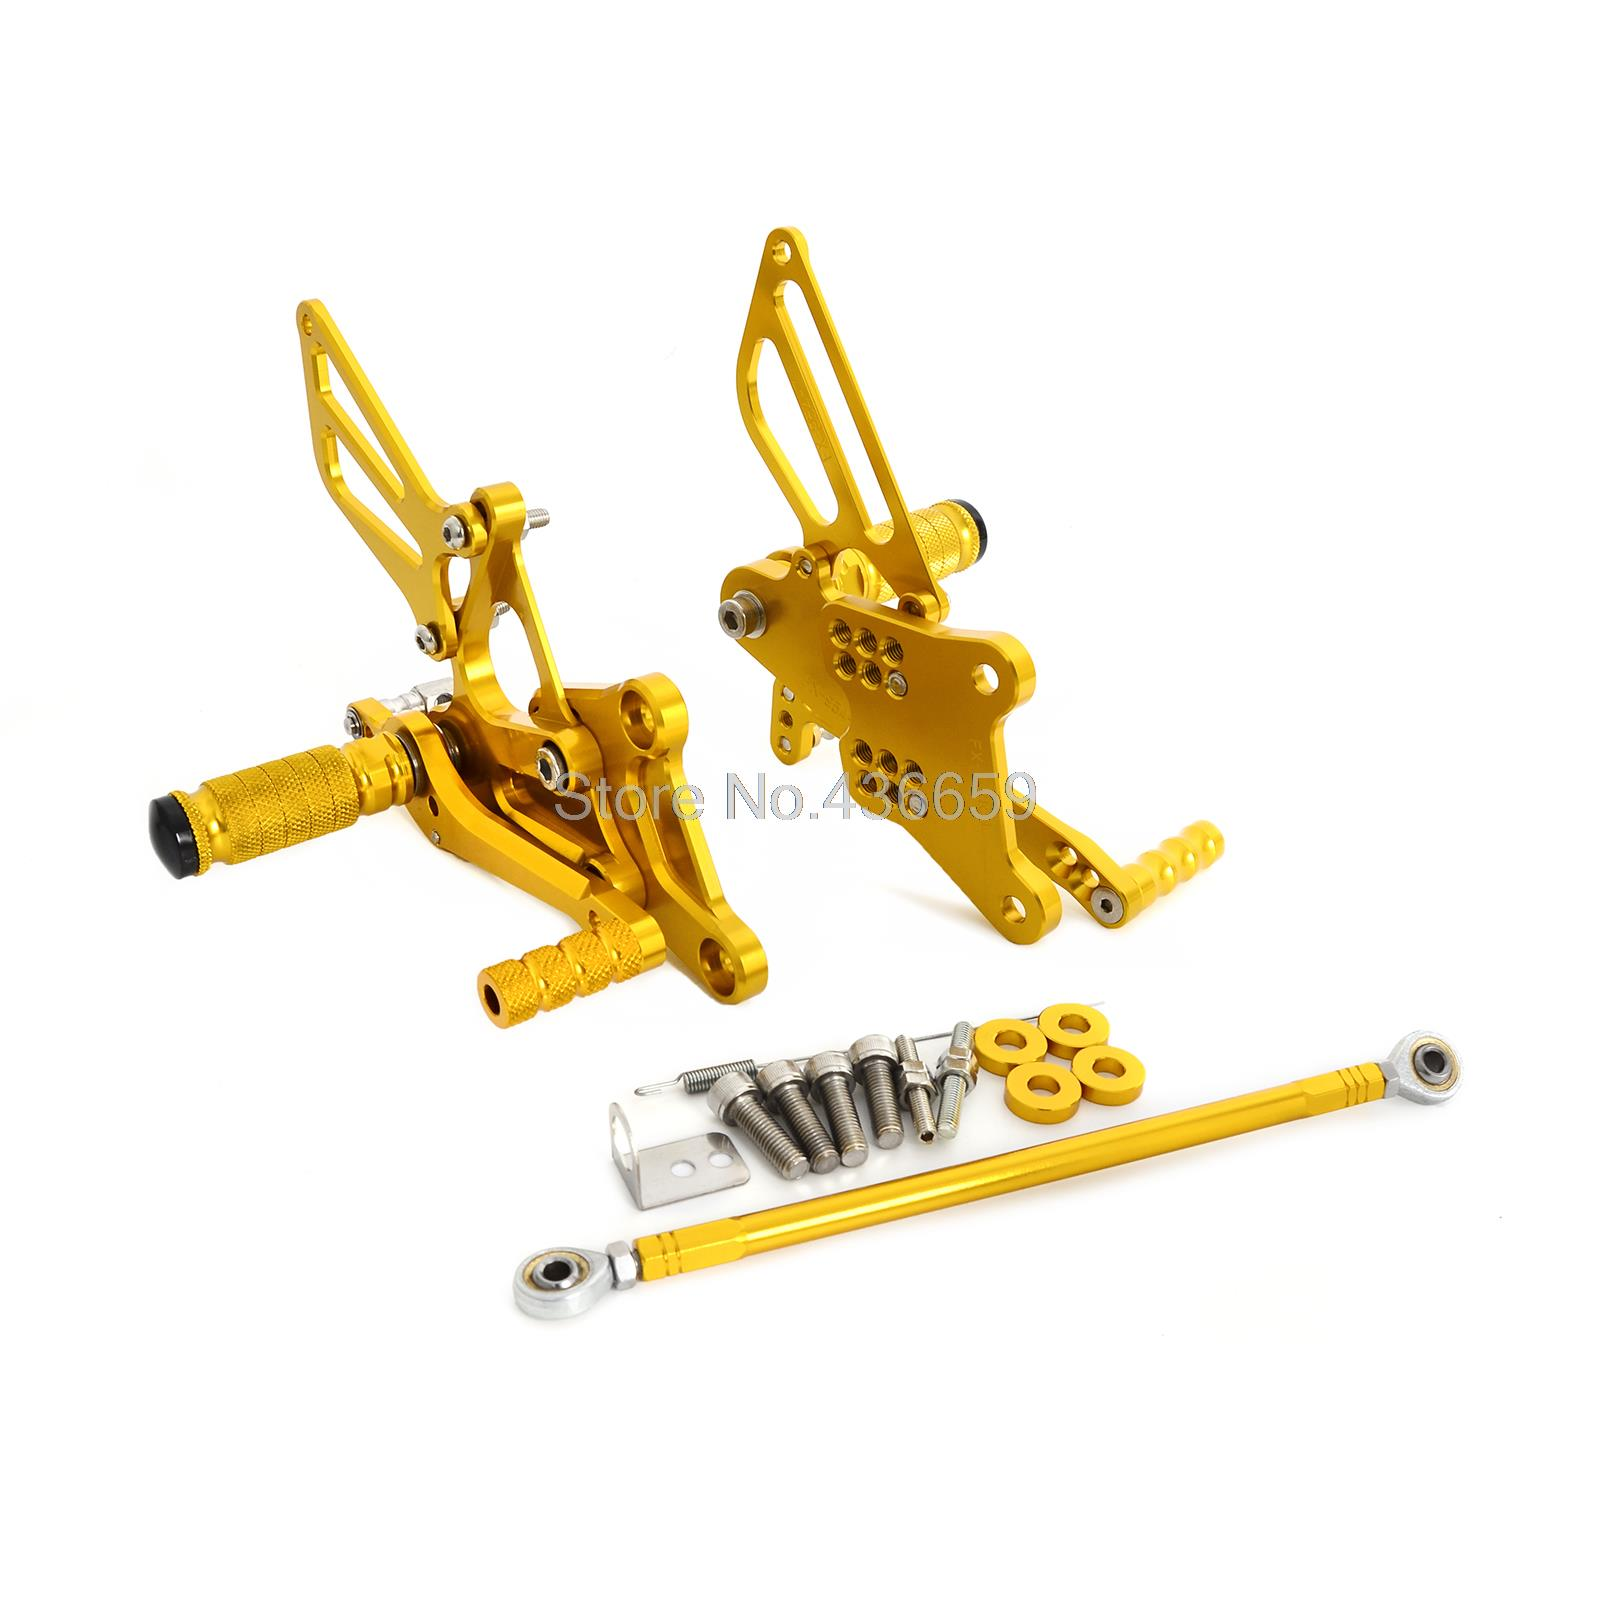 Gold CNC Billet Racing Adjustable Foot Pegs Rear Sets For Honda VFR400 NC30 RVF400 NC35